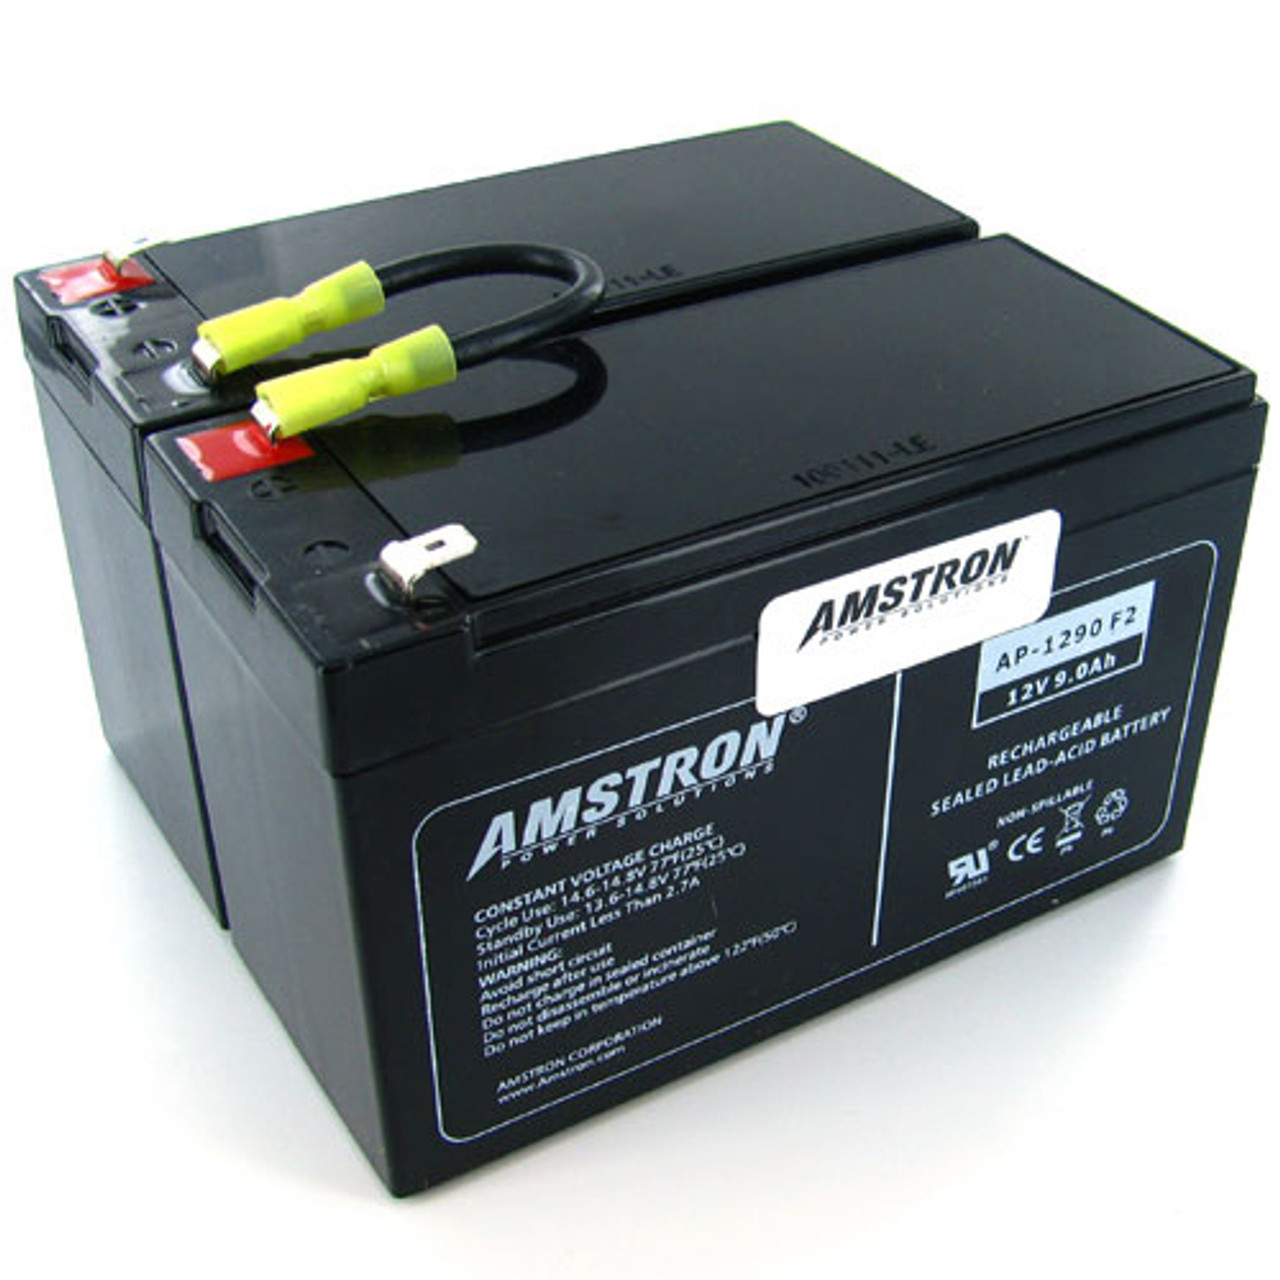 APC RBC109 Replacement Battery by Amstron (2 Year Warranty)